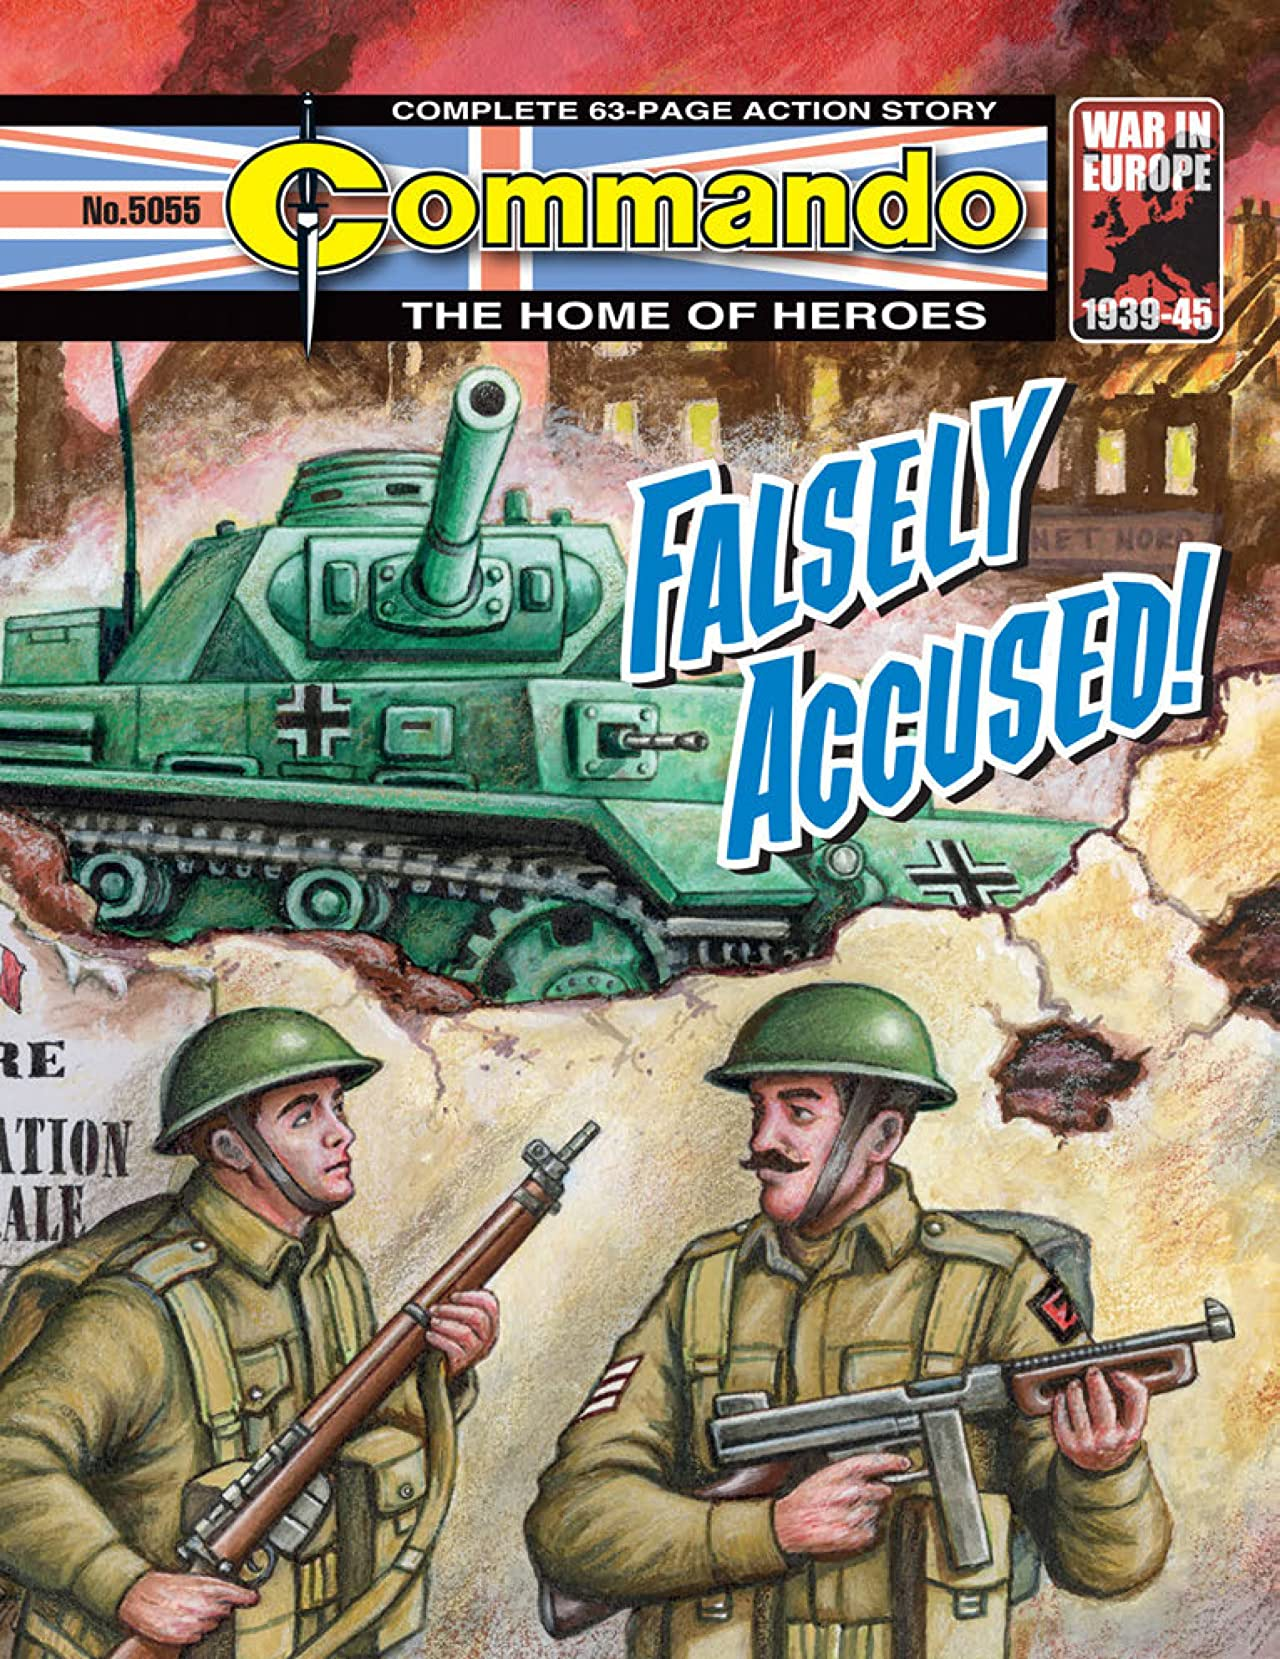 Commando #5055: Falsely Accused!